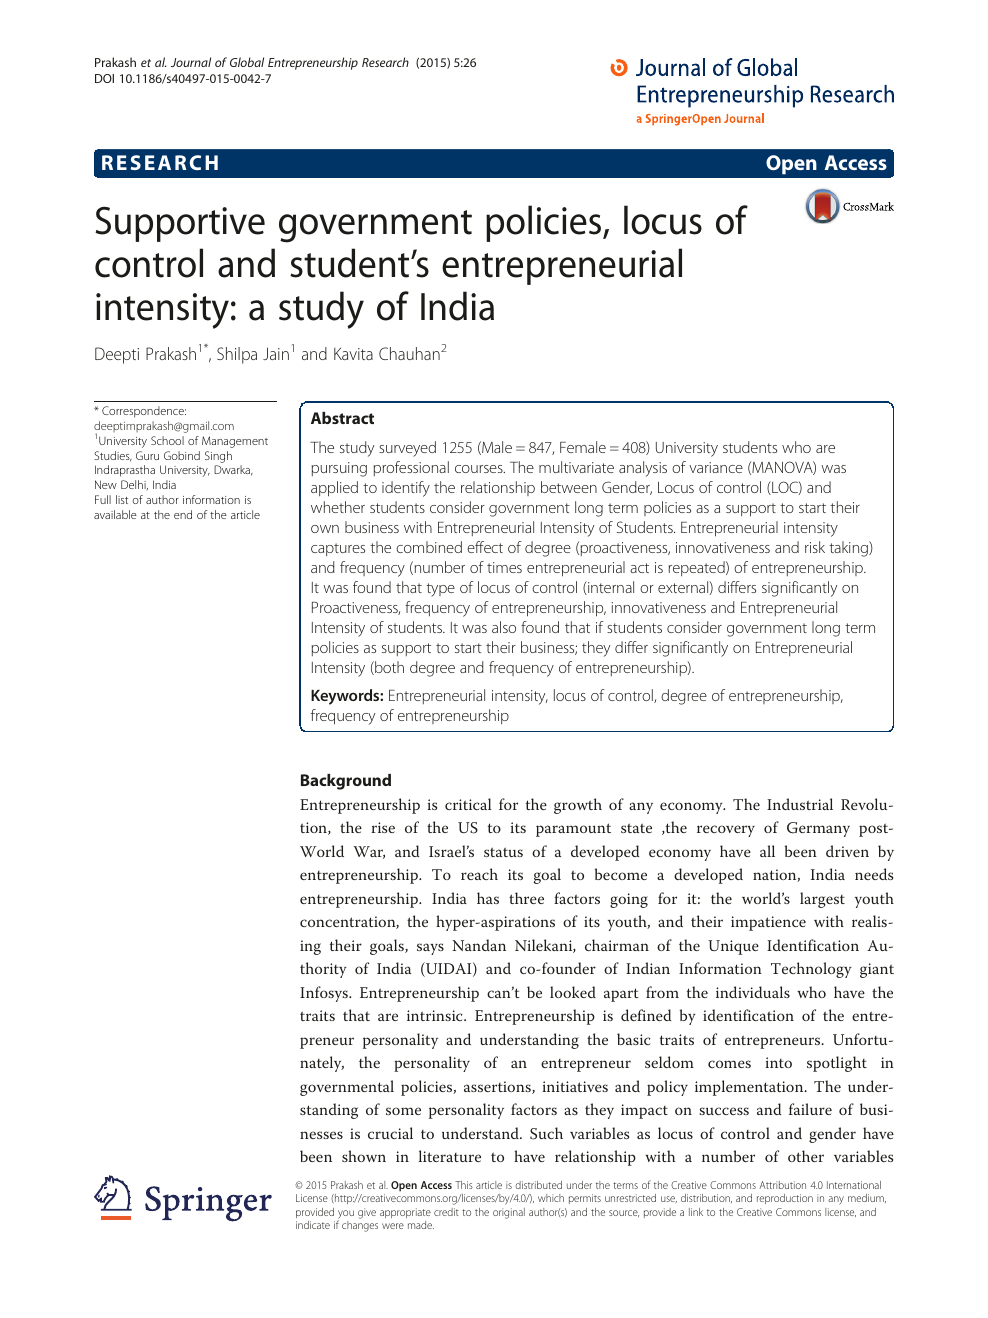 Supportive government policies, locus of control and student's